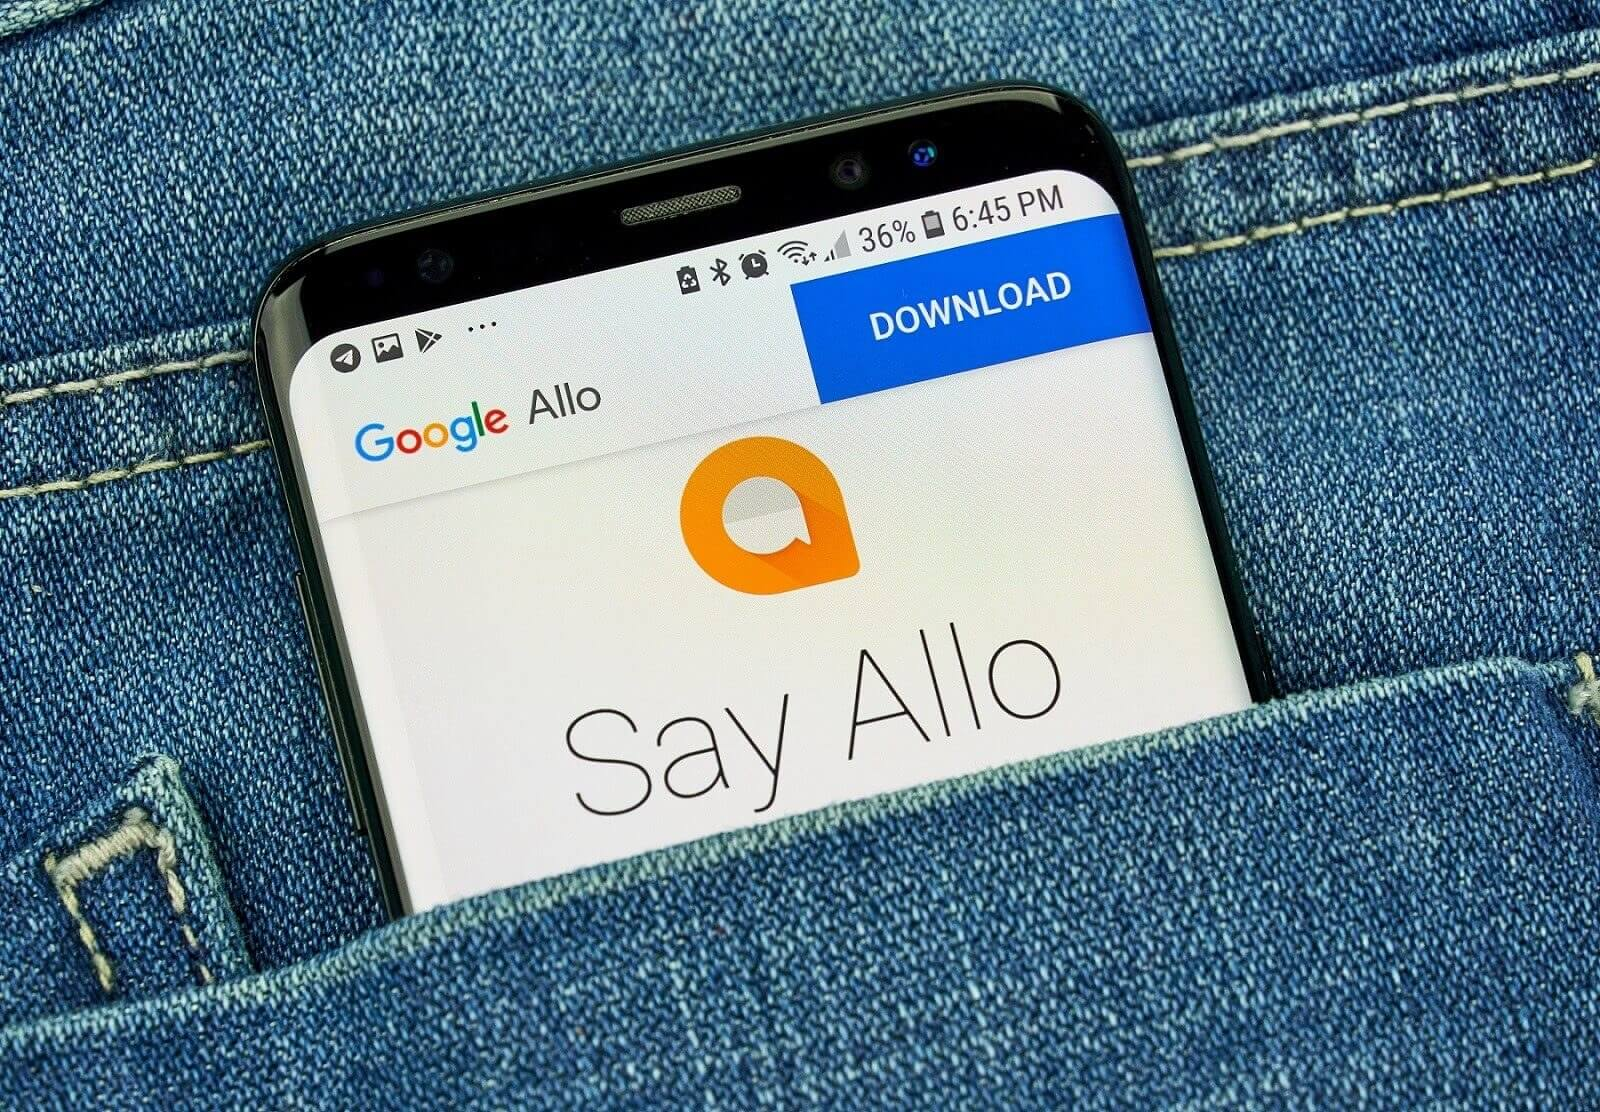 Google's Allo messaging service dies today